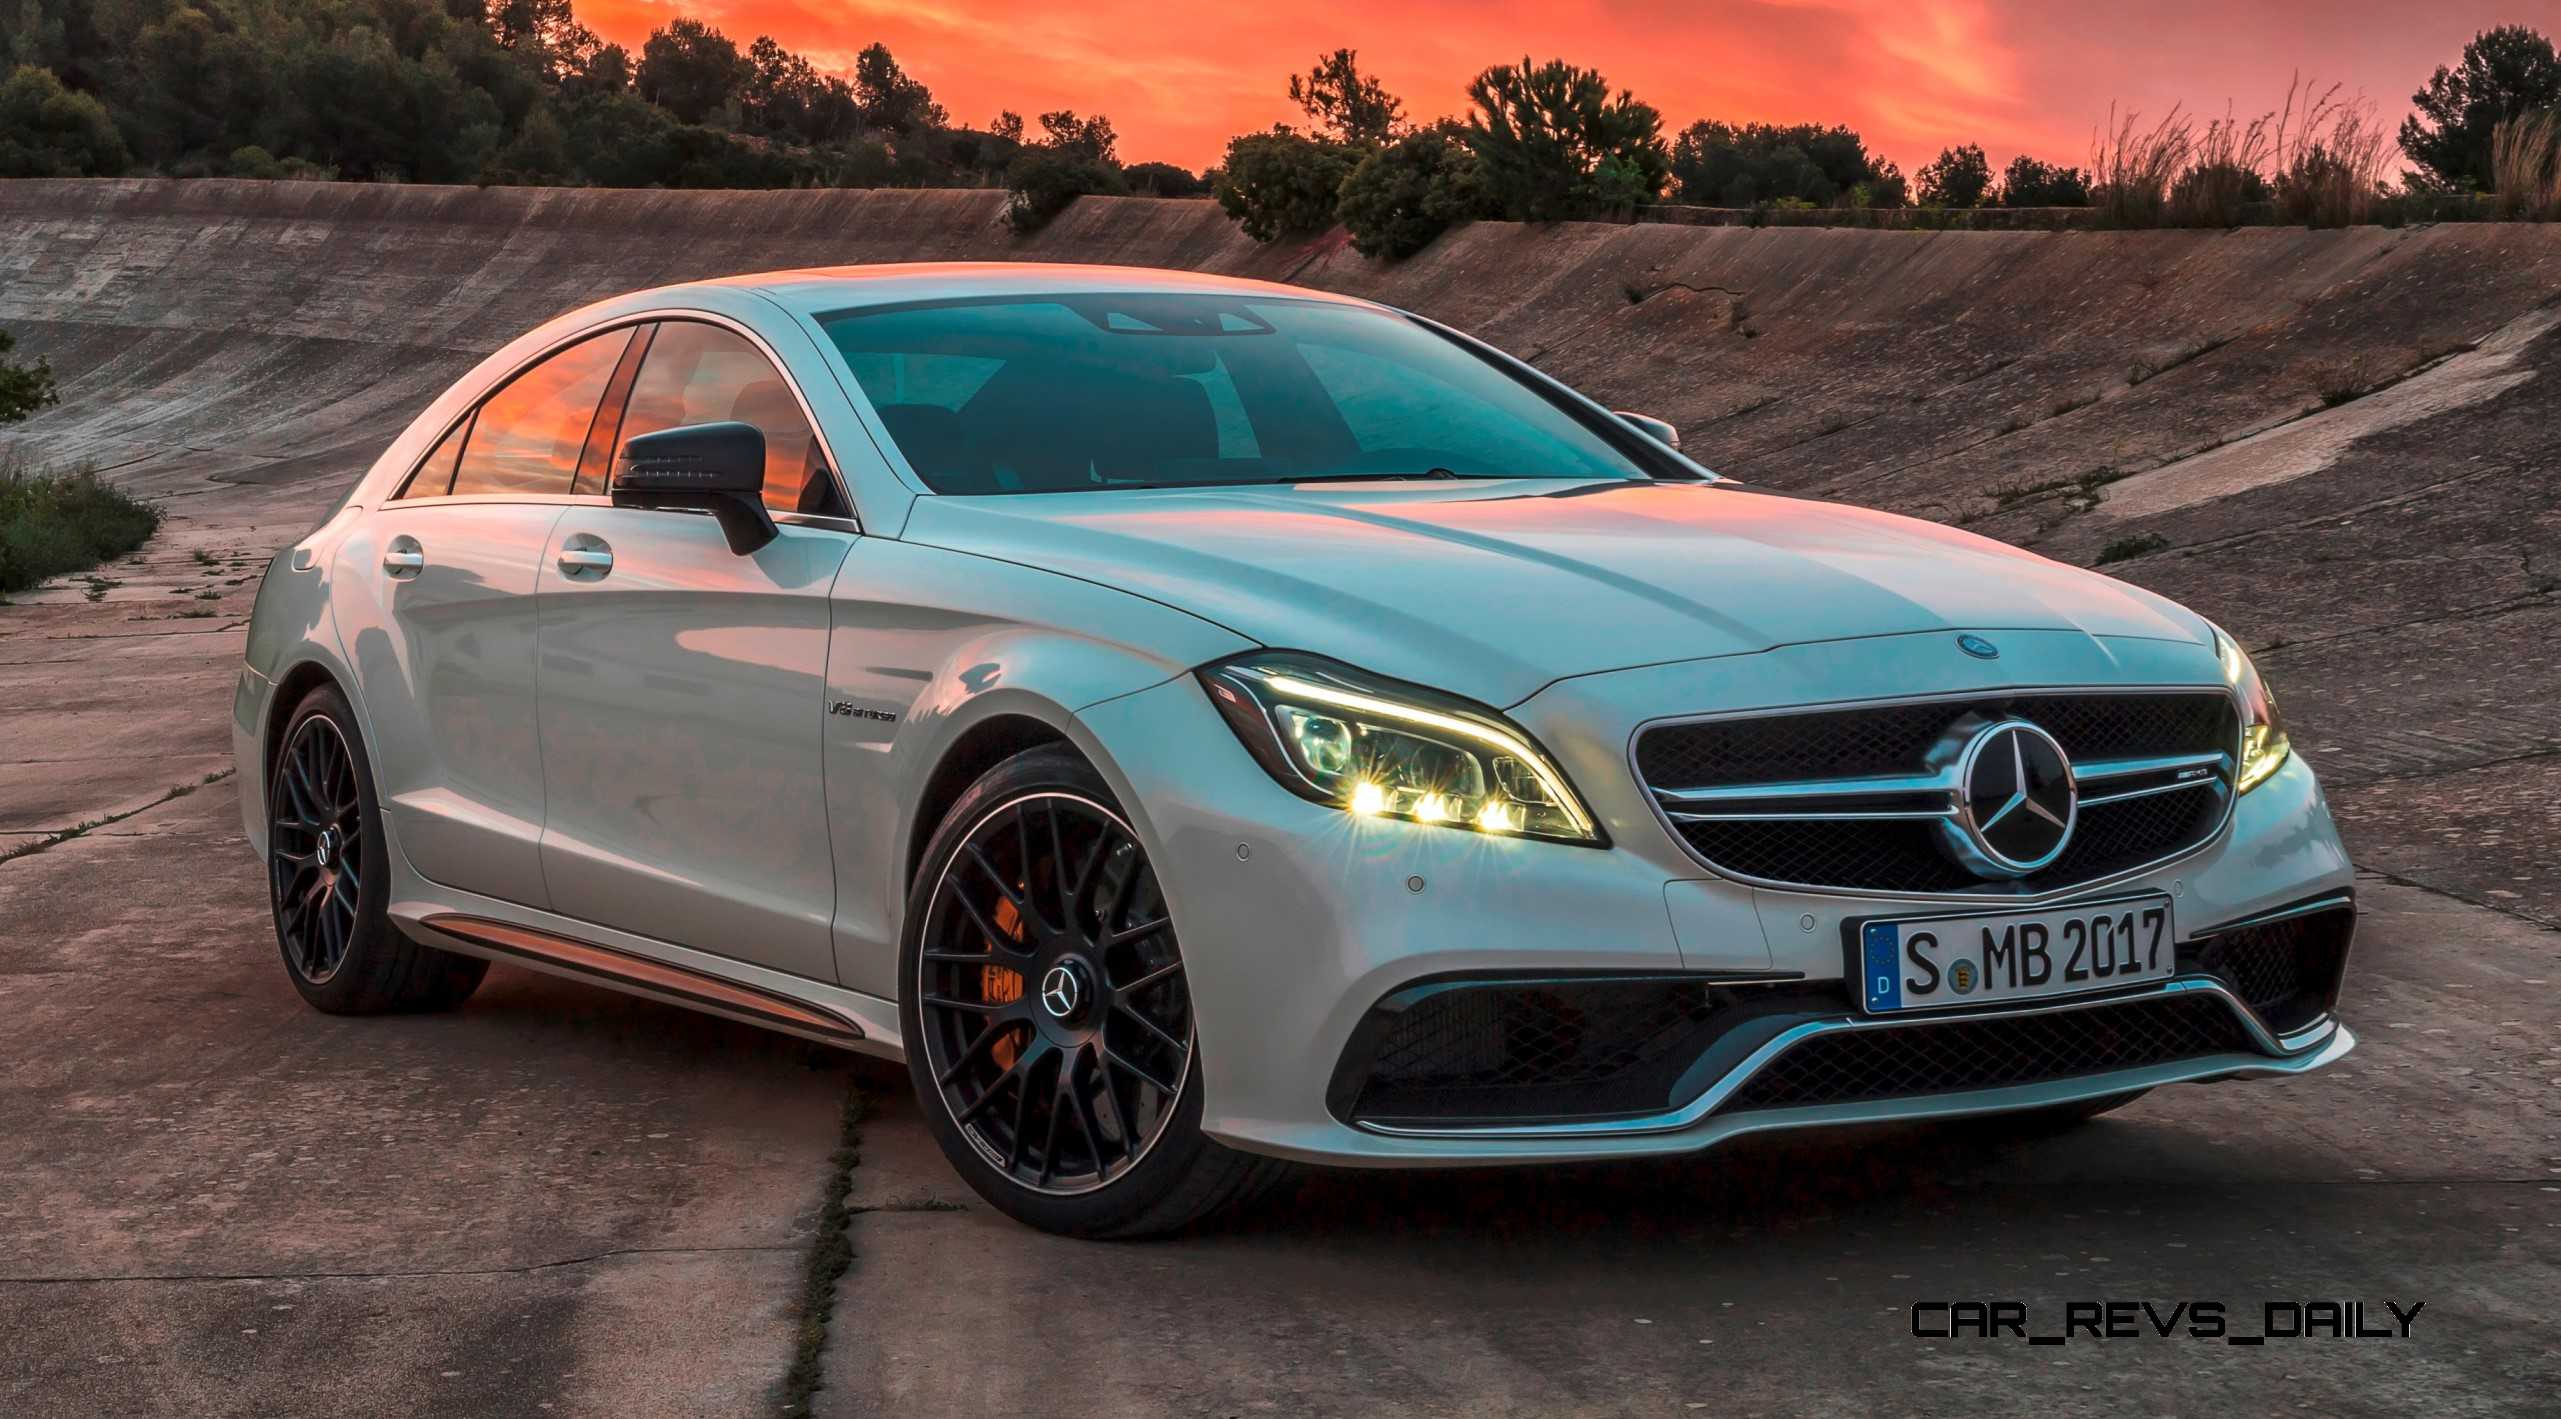 2019 Mercedes Benz CLS63 AMG photo - 2